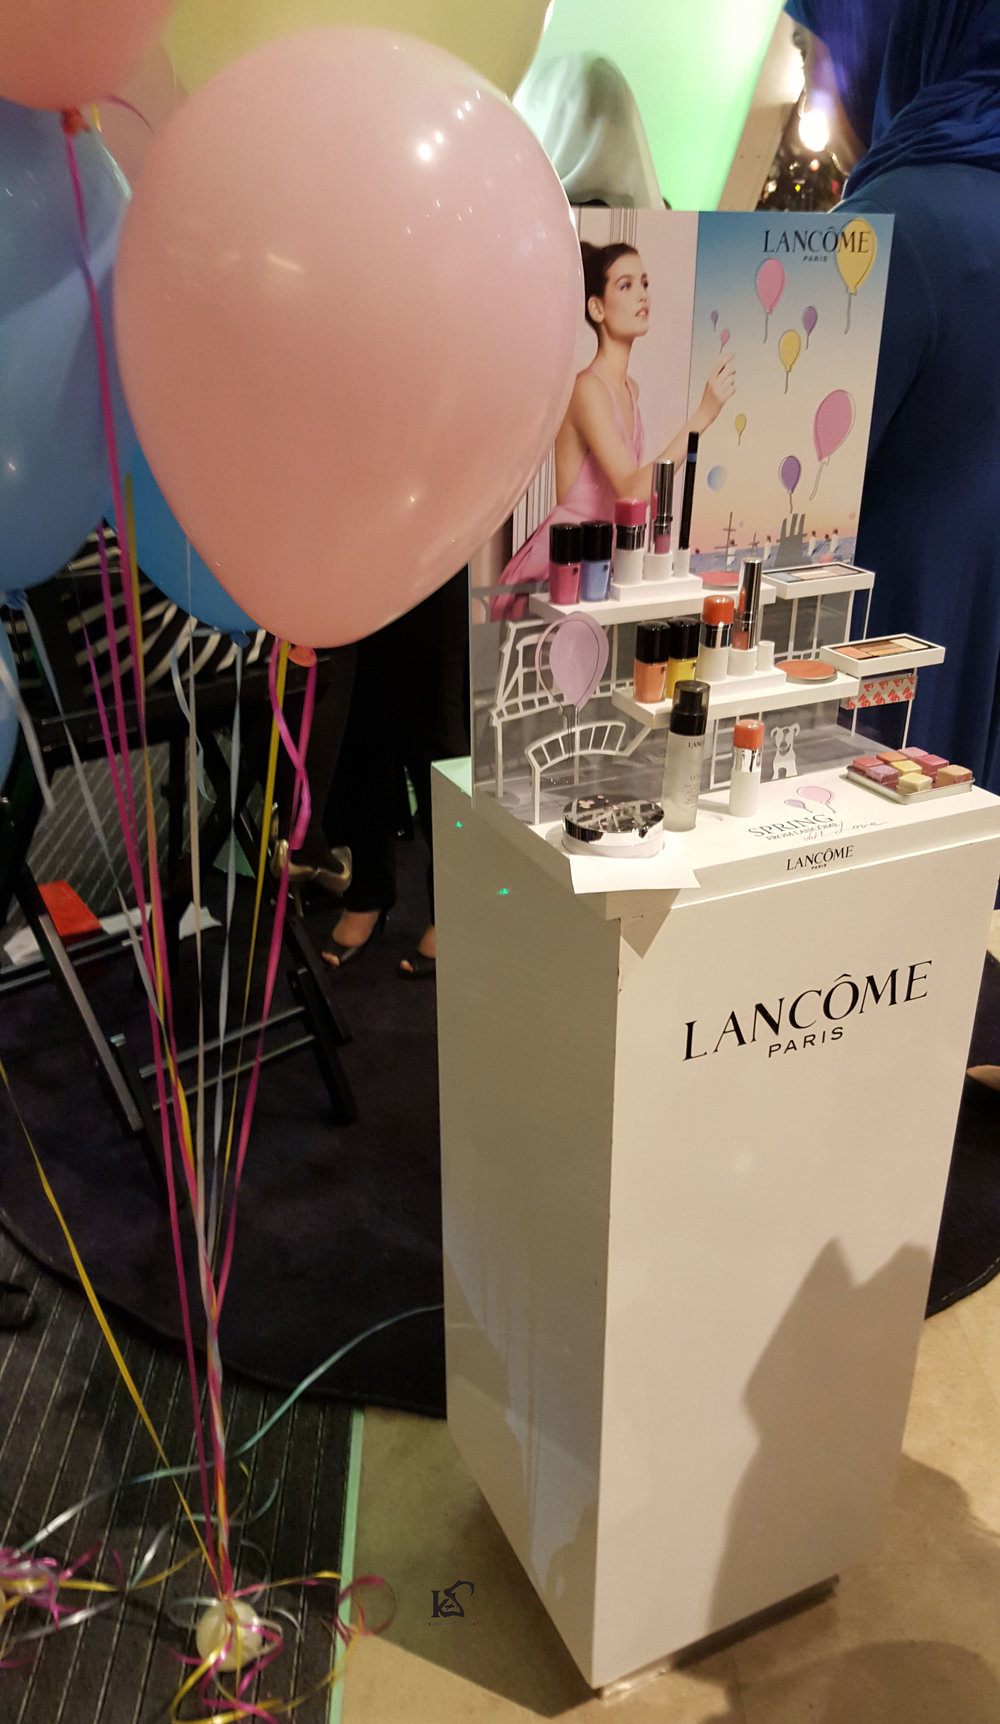 Fashion-dream-house-salam-stores-pastels-lancome.jpg